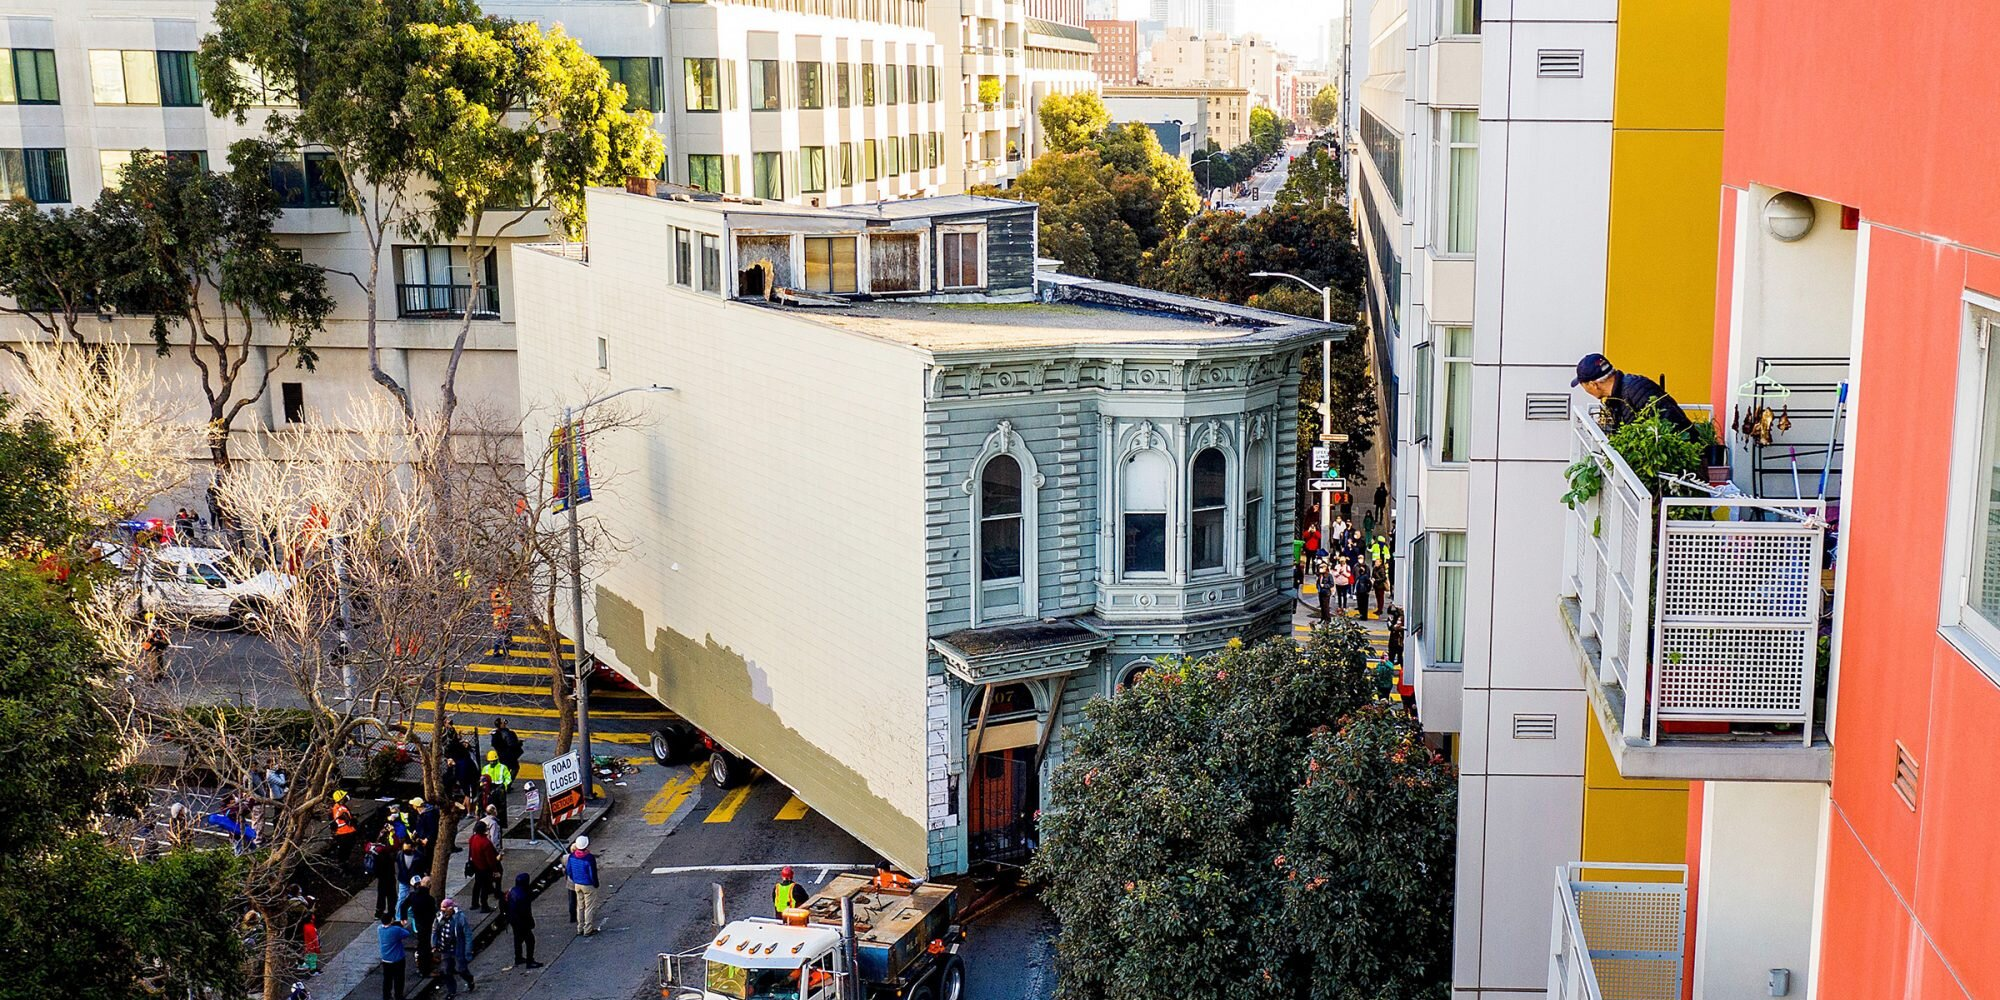 139-Year-Old Victorian House Was Placed on Wheels and Moved Through San Francisco's Streets